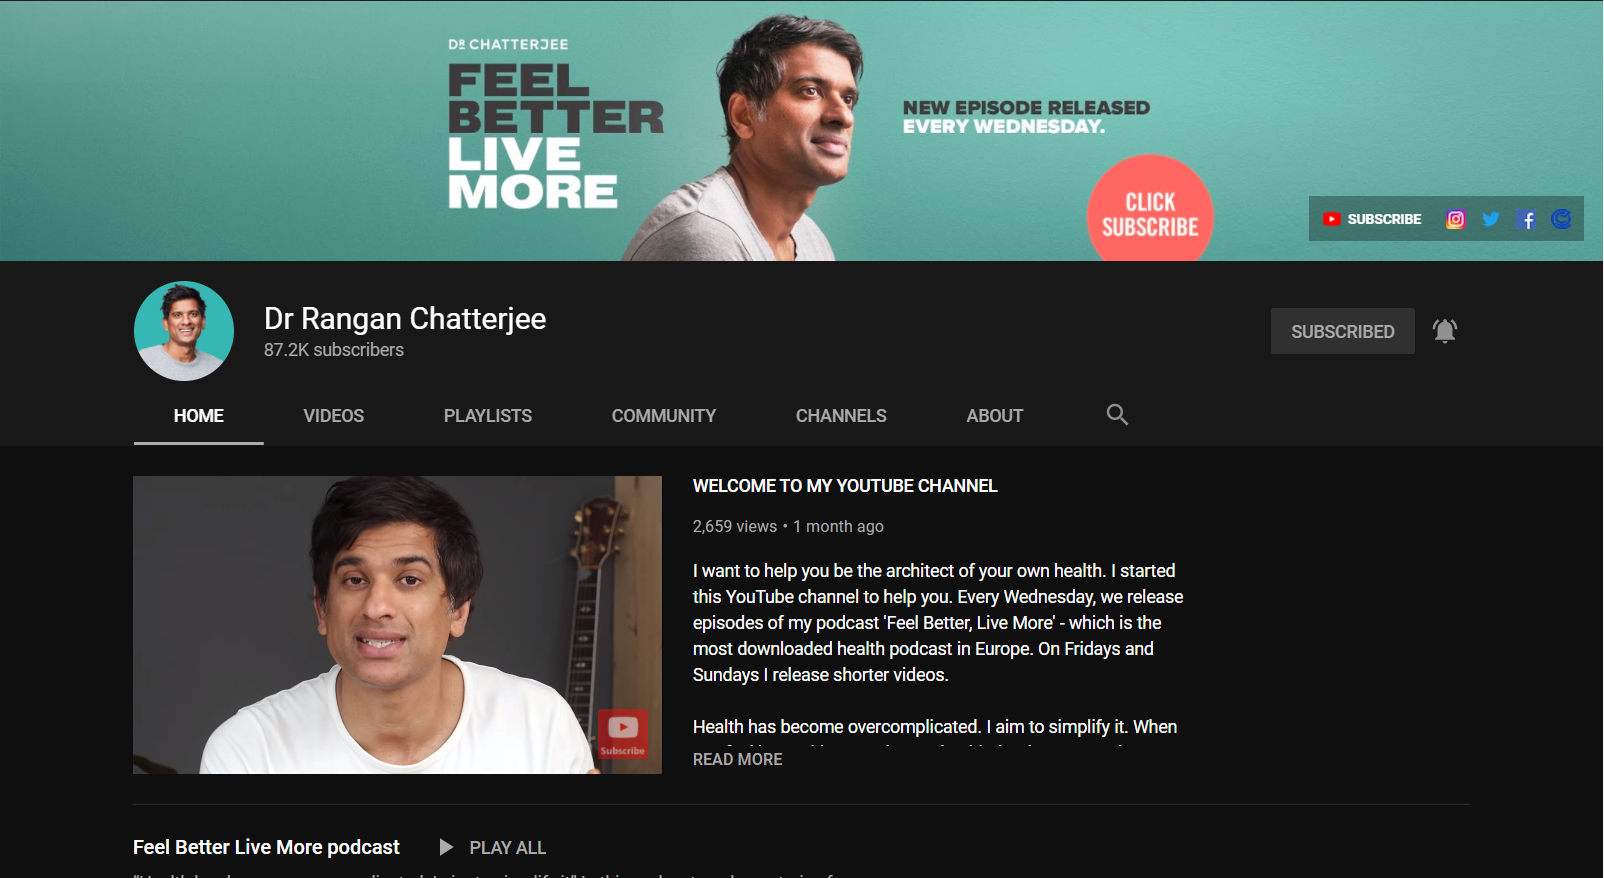 Feel Better, Live More by Dr. Rangan Chatterjee on YouTube